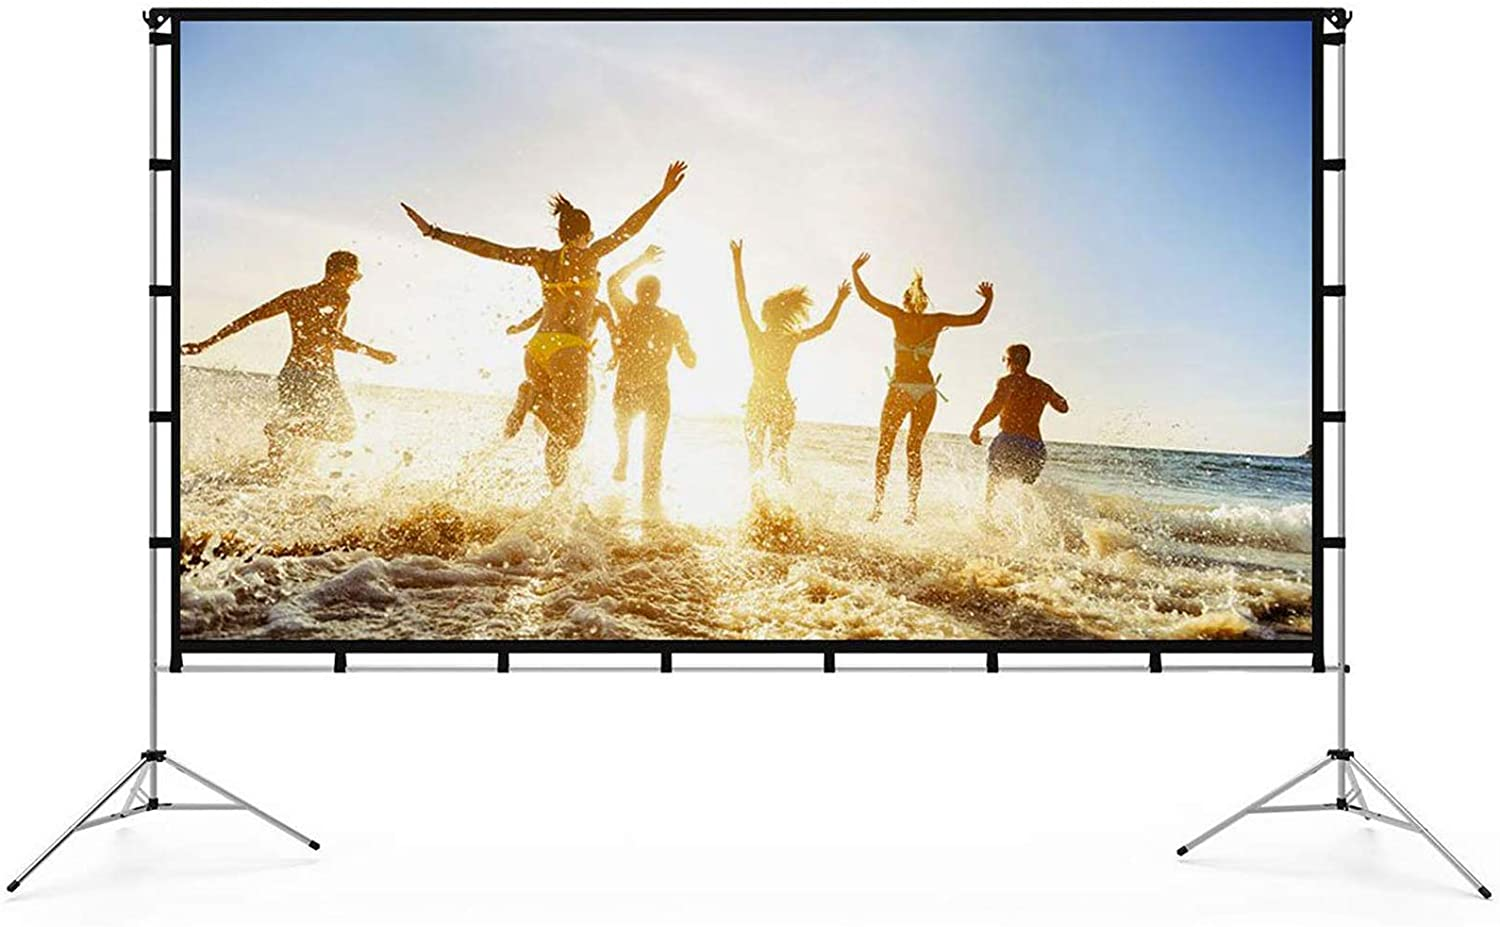 Vamvo Outdoor Indoor Projector Screen with Stand Foldable Portable Movie Screen 120 Inch Full-Set Bag for Home Theatre Camping and Recreational Events uk reviews